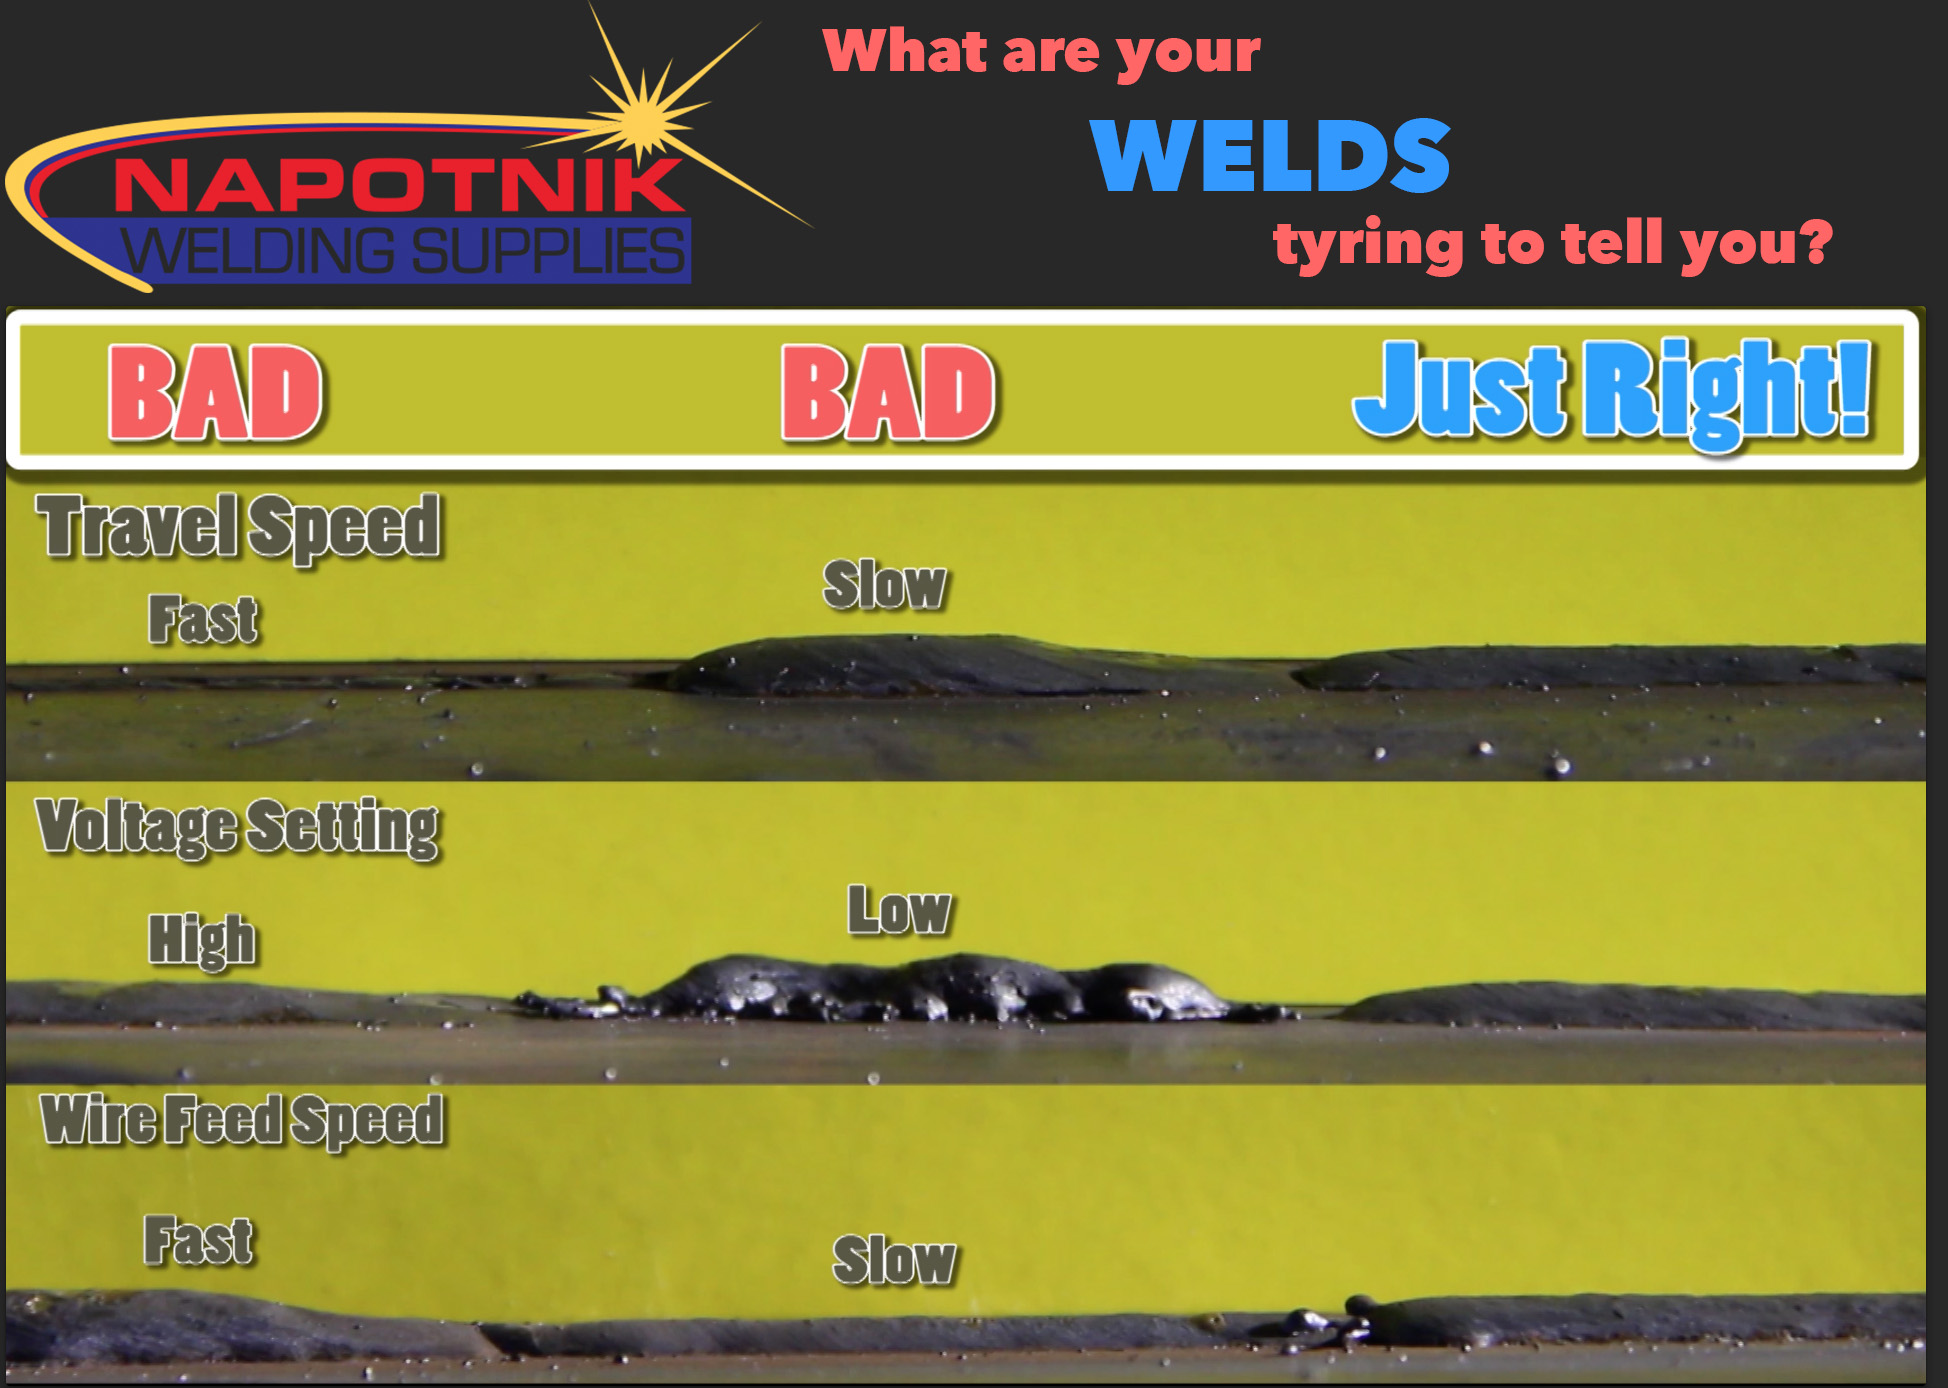 3 Secrets Your Welds are Trying to Tell You... - Napotnik Welding ...